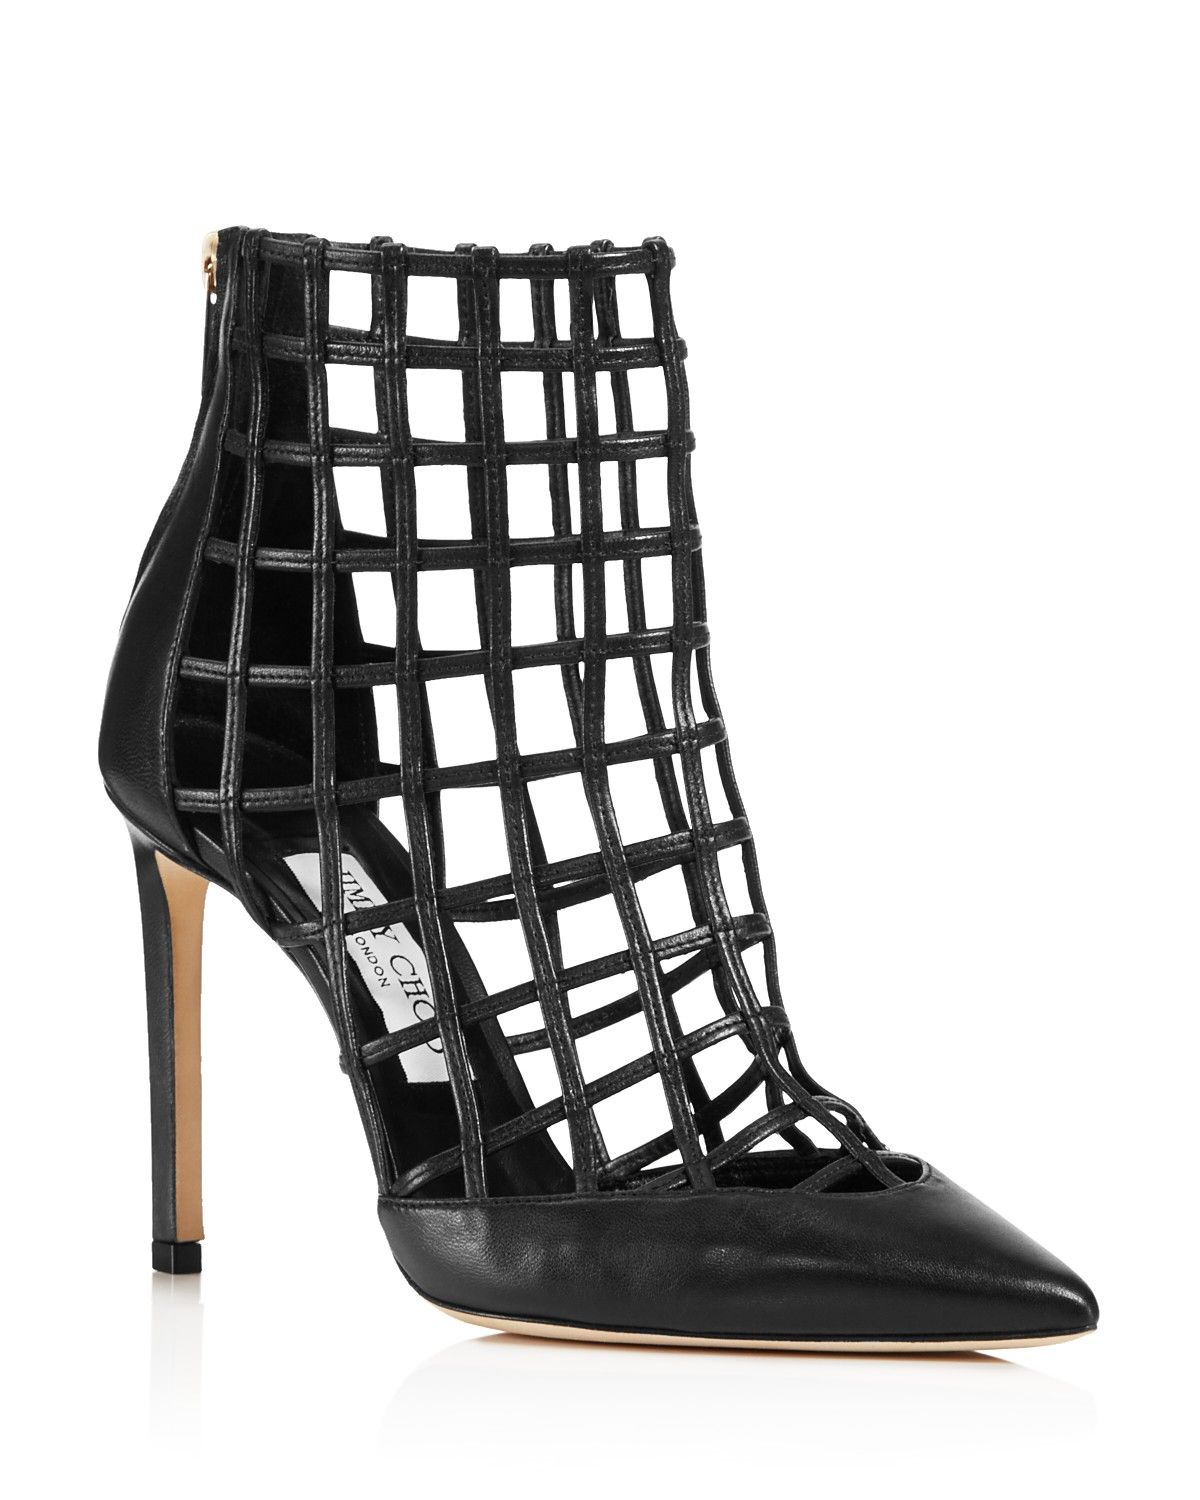 6338e36581c3 Jimmy Choo Women s Sheldon 100 Caged Leather High Heel Booties PRICE ...